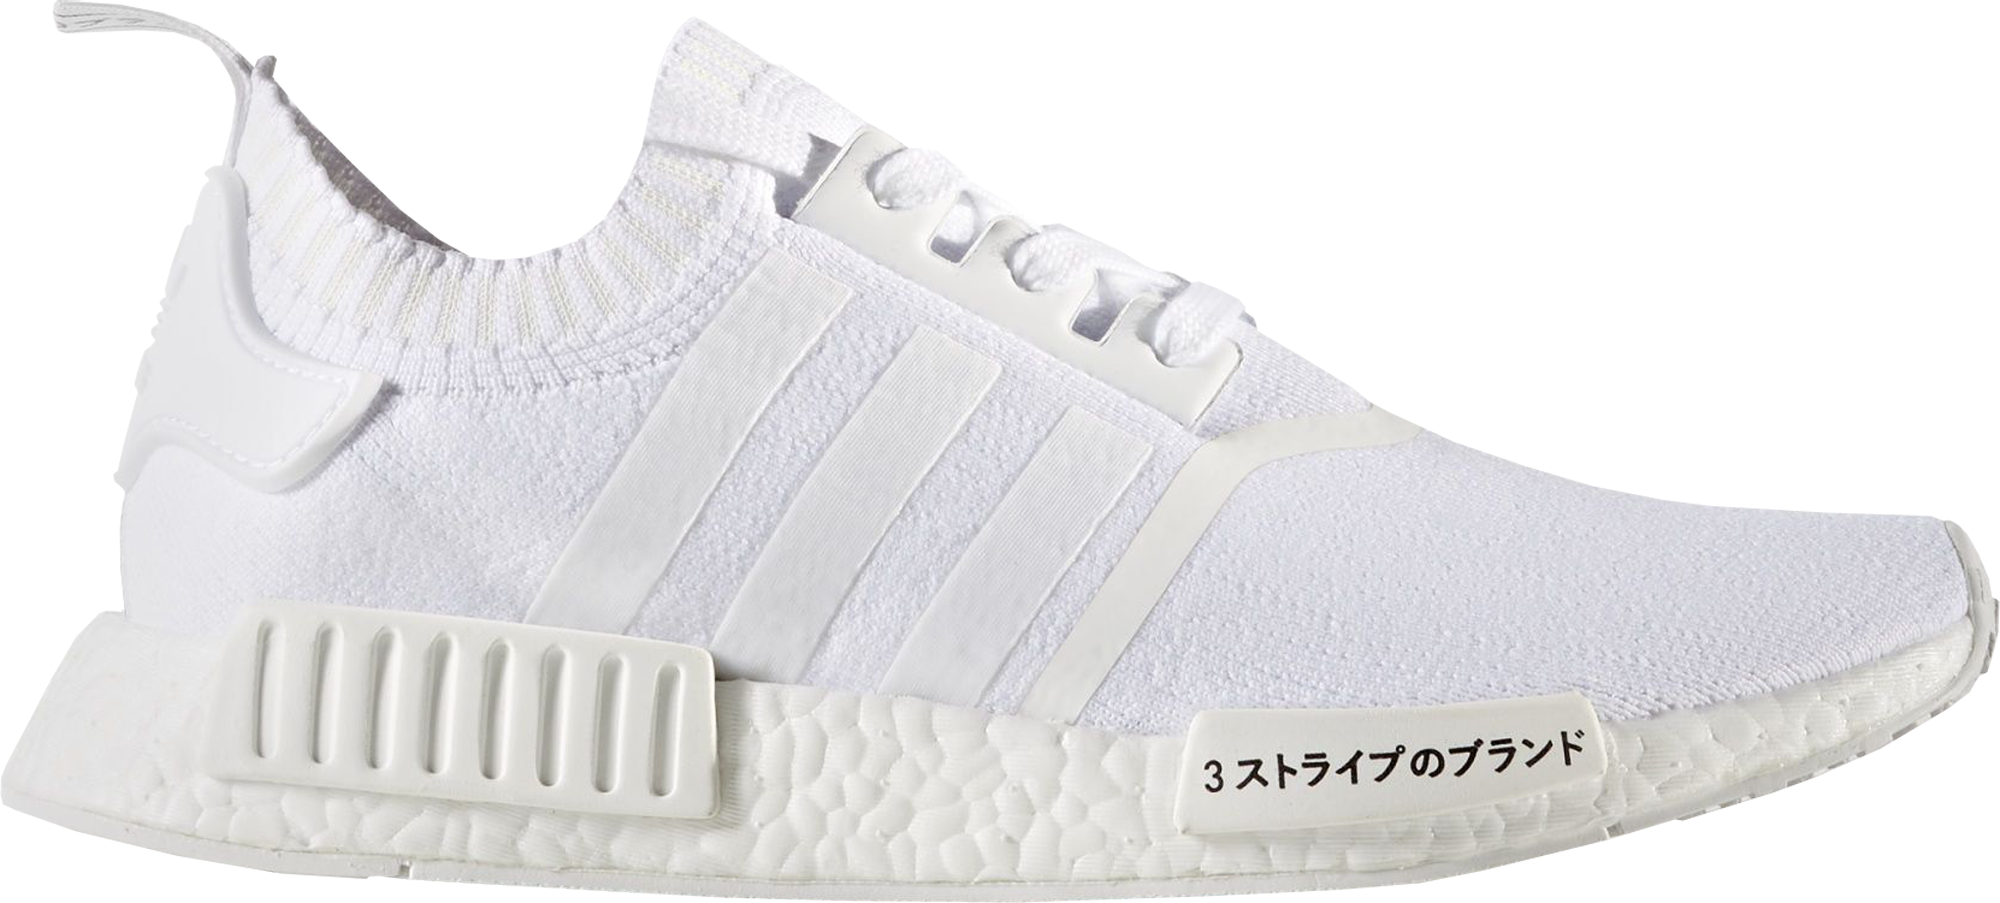 265d3b48b adidas shoes discount sale adidas nmd r1 primeknit japan triple ...